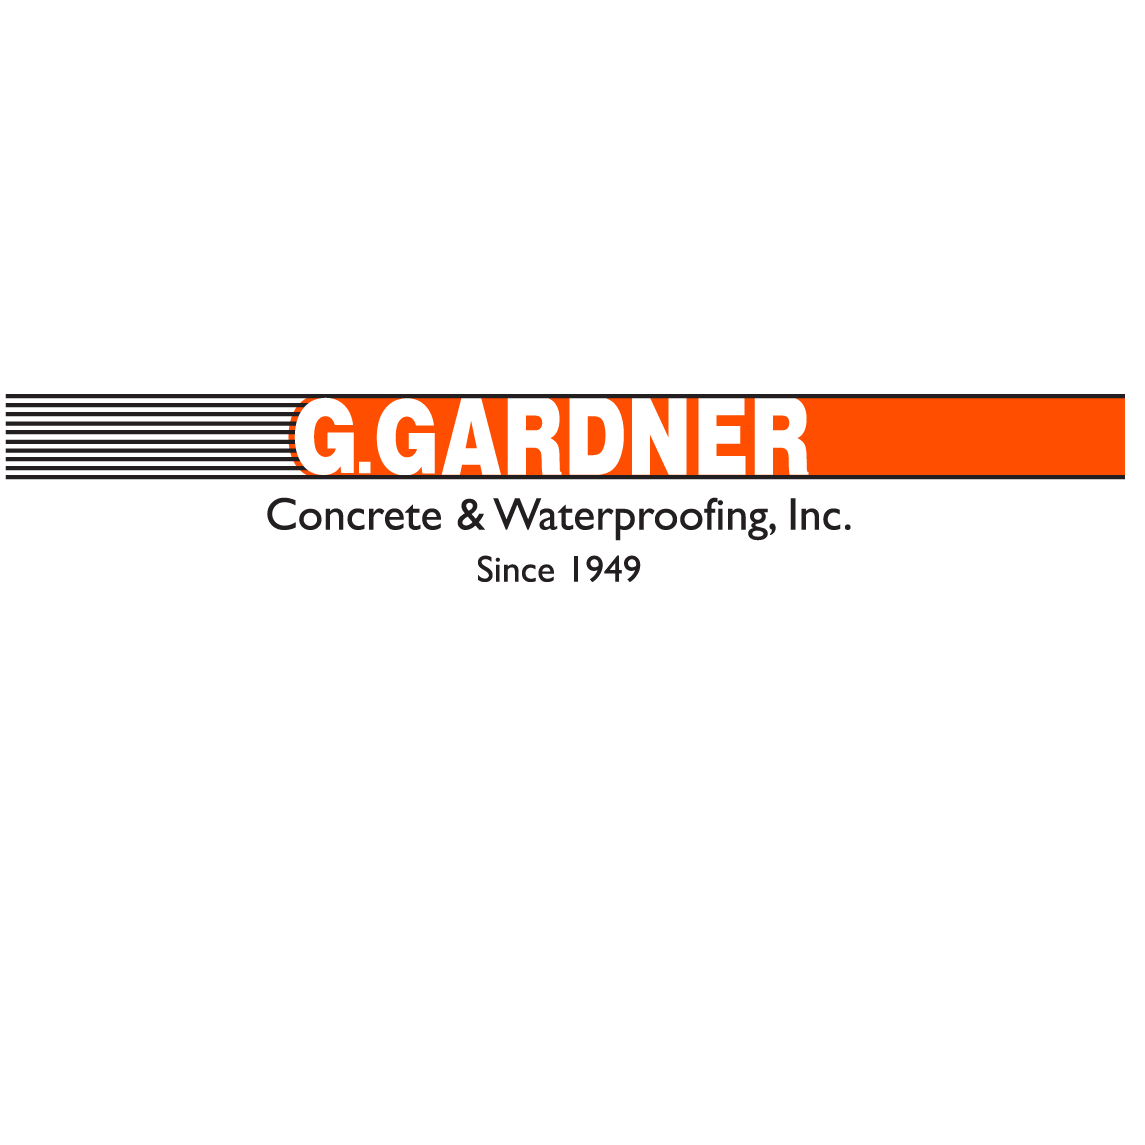 G gardner concrete waterproofing inc in savage mn 55378 for Gardner inc